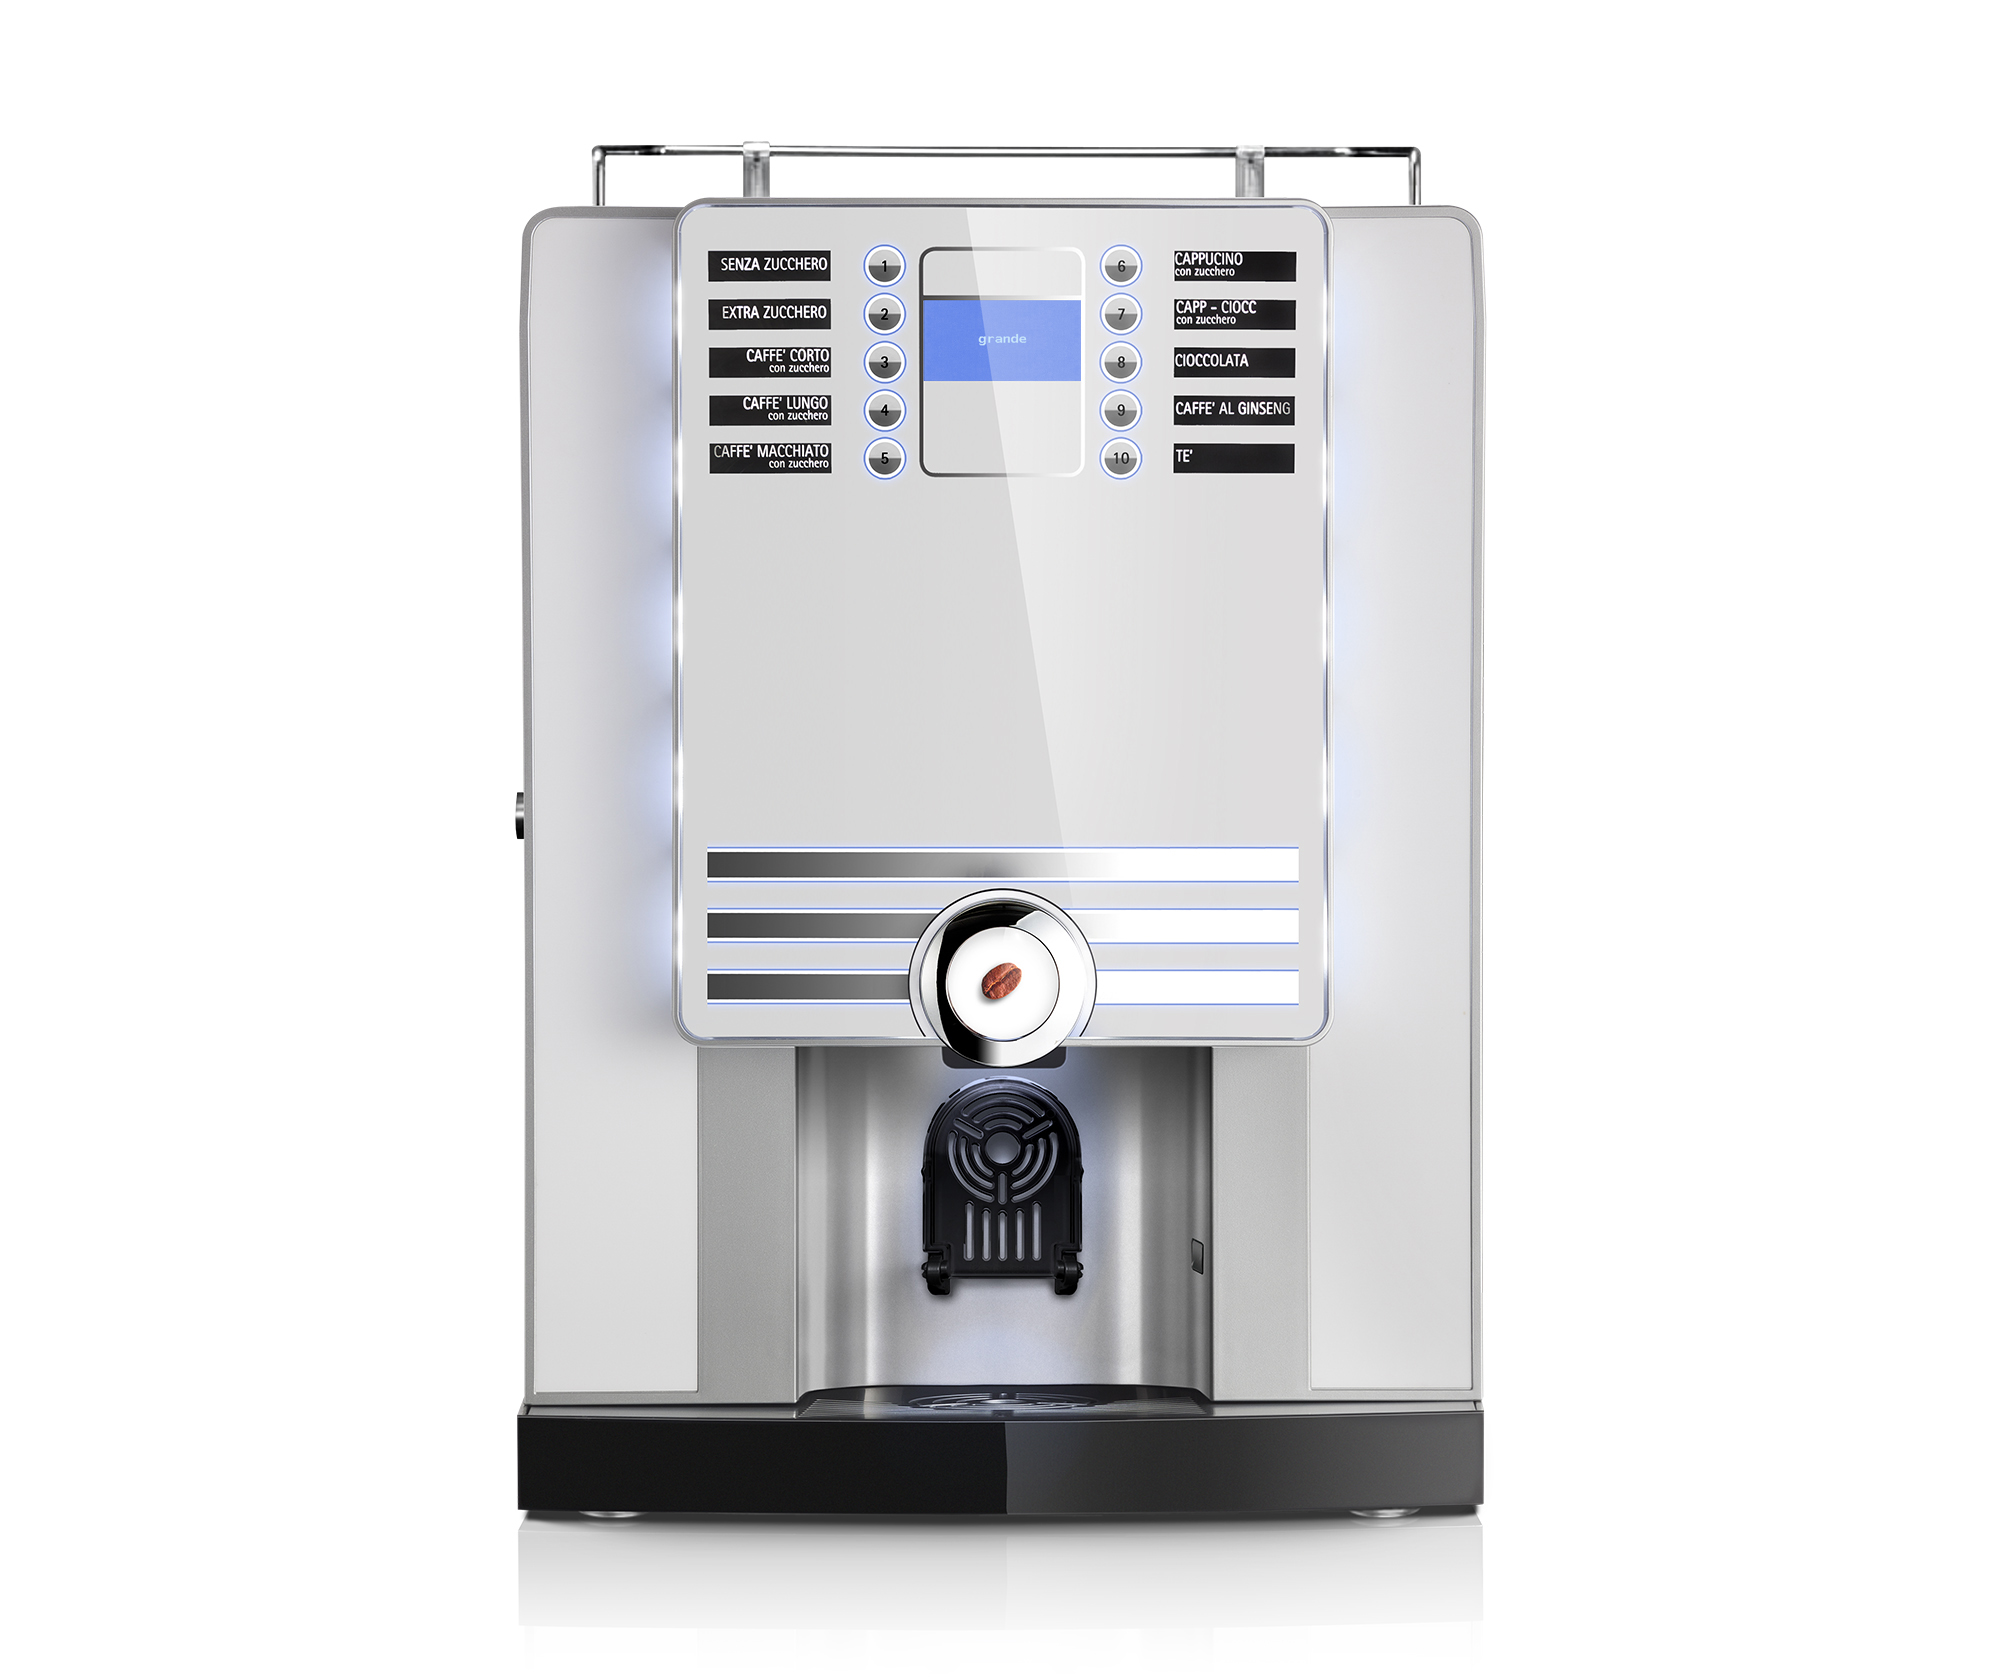 xs grande - Hot Drinks Machine